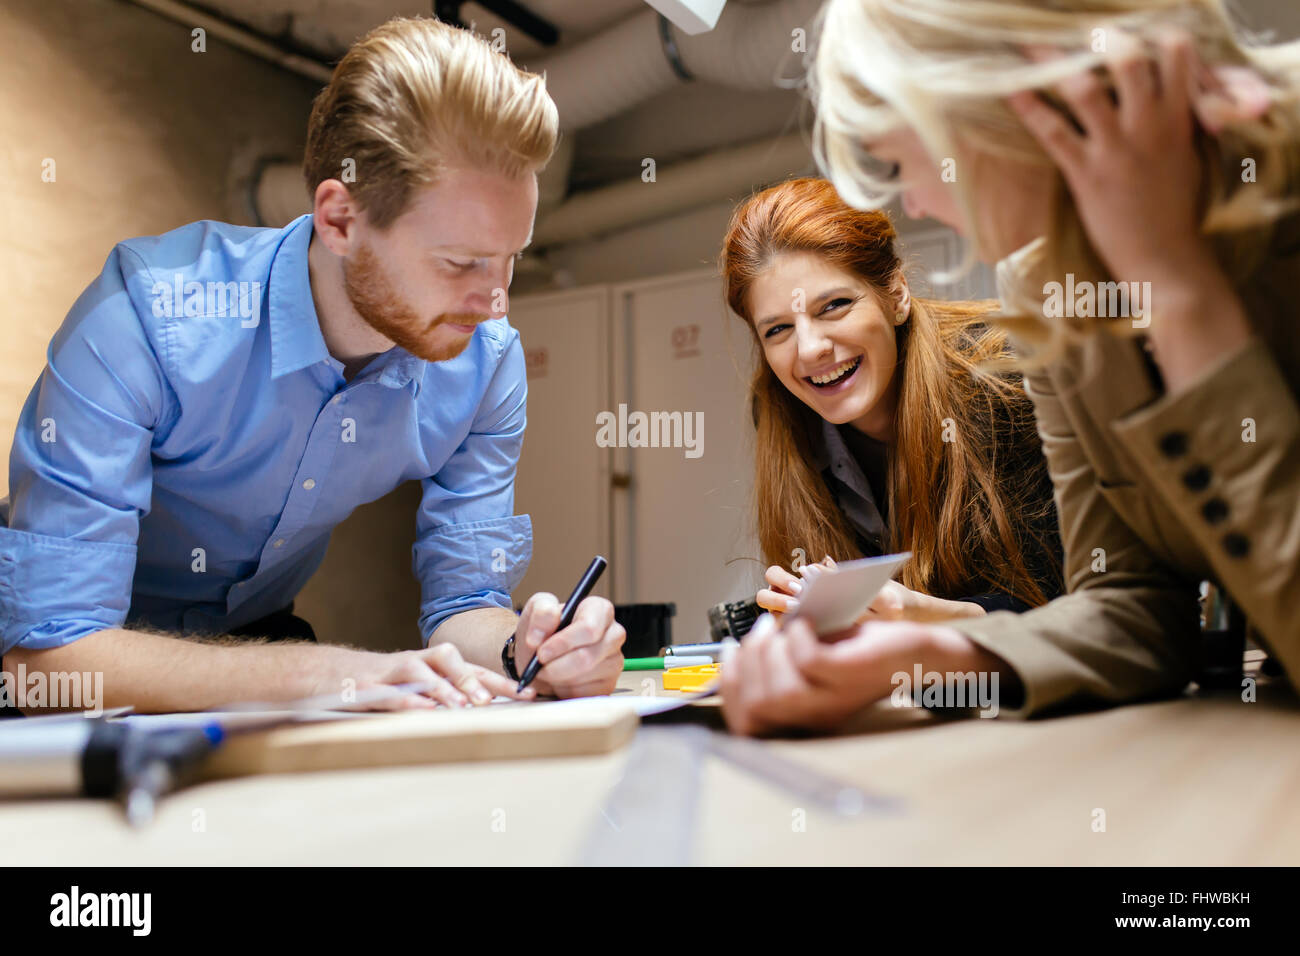 Team working on project together and sharing ideas in workshop - Stock Image